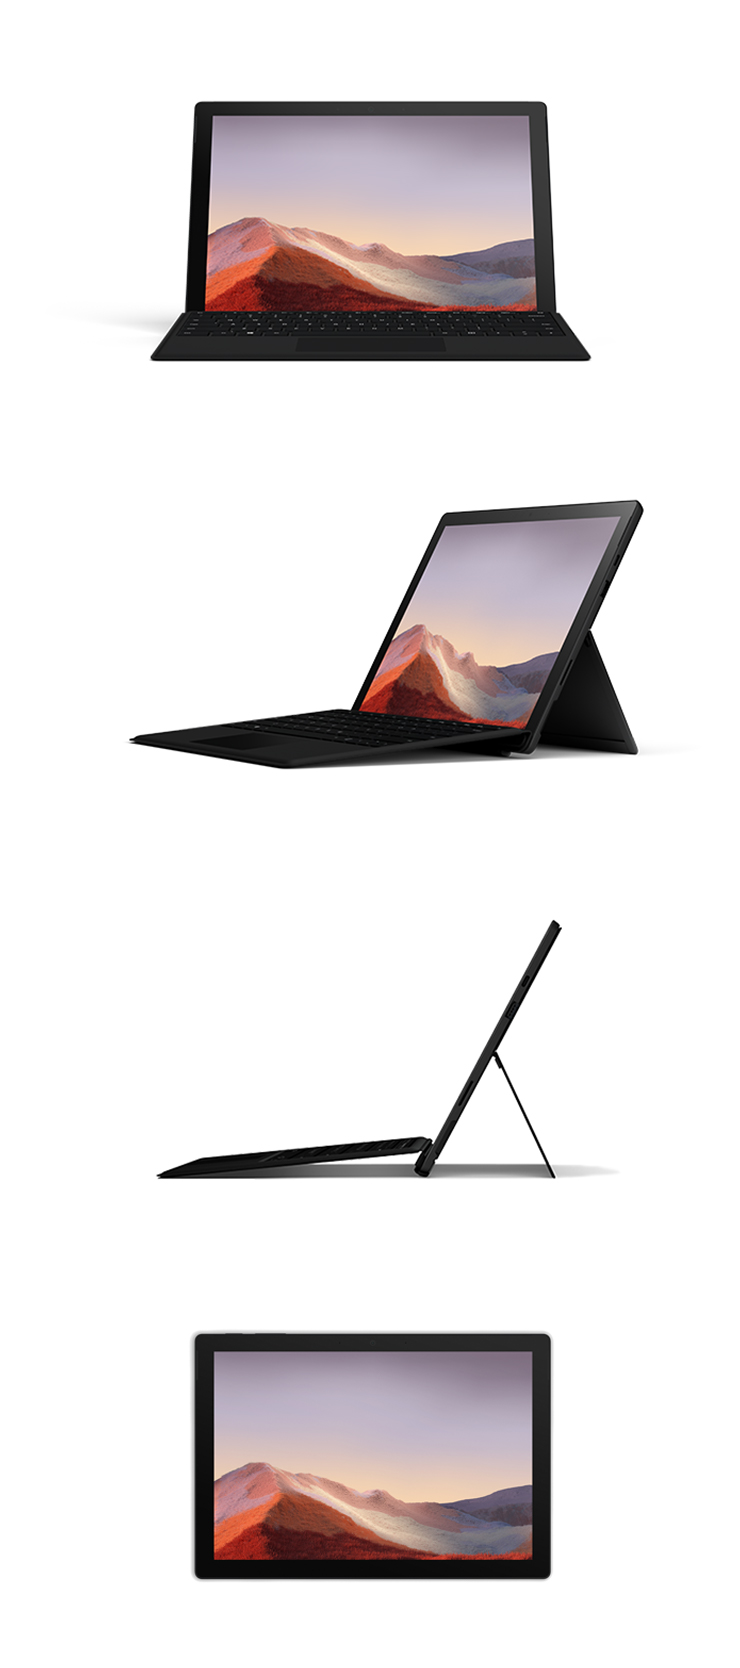 360 rotation of the Surface Pro 7 (Black)